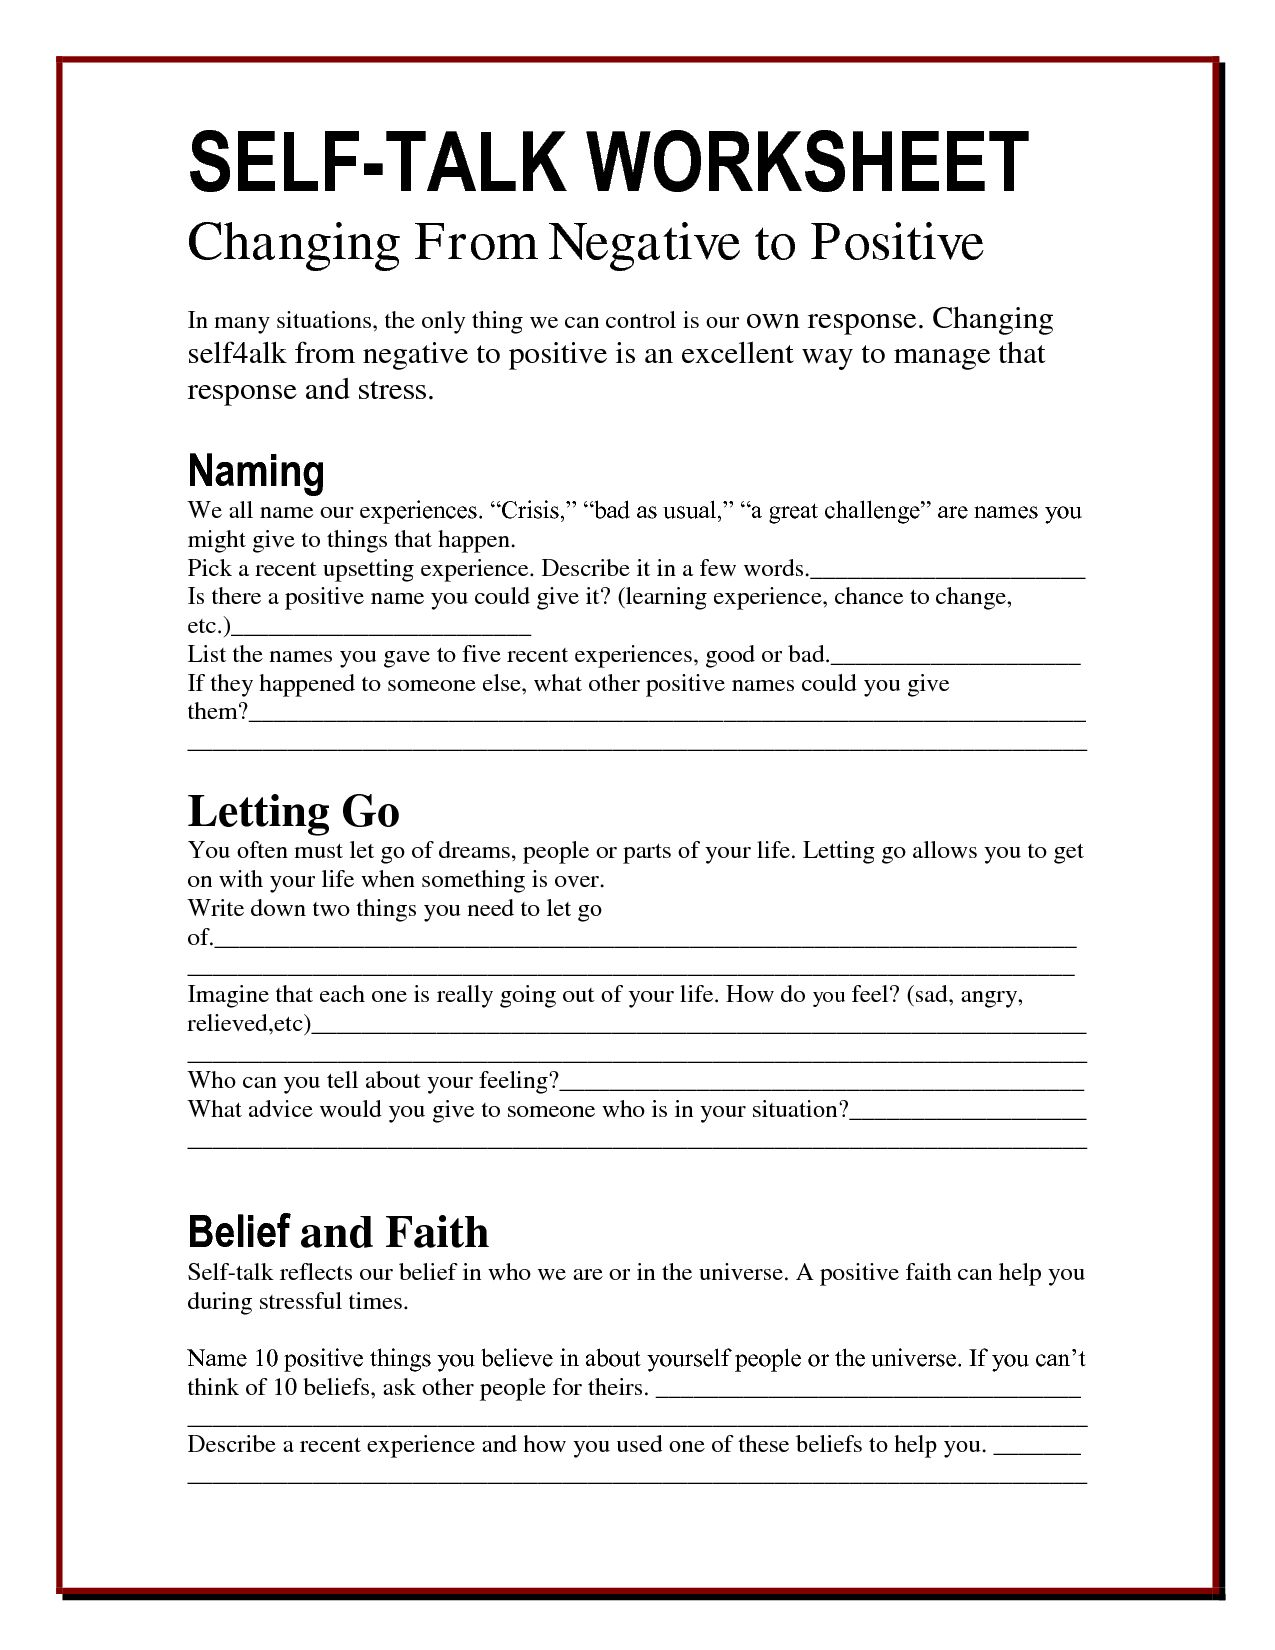 worksheet Mental Health Group Worksheets stress management worksheets handout workshop attitude shifting pinterest summer health and workshop